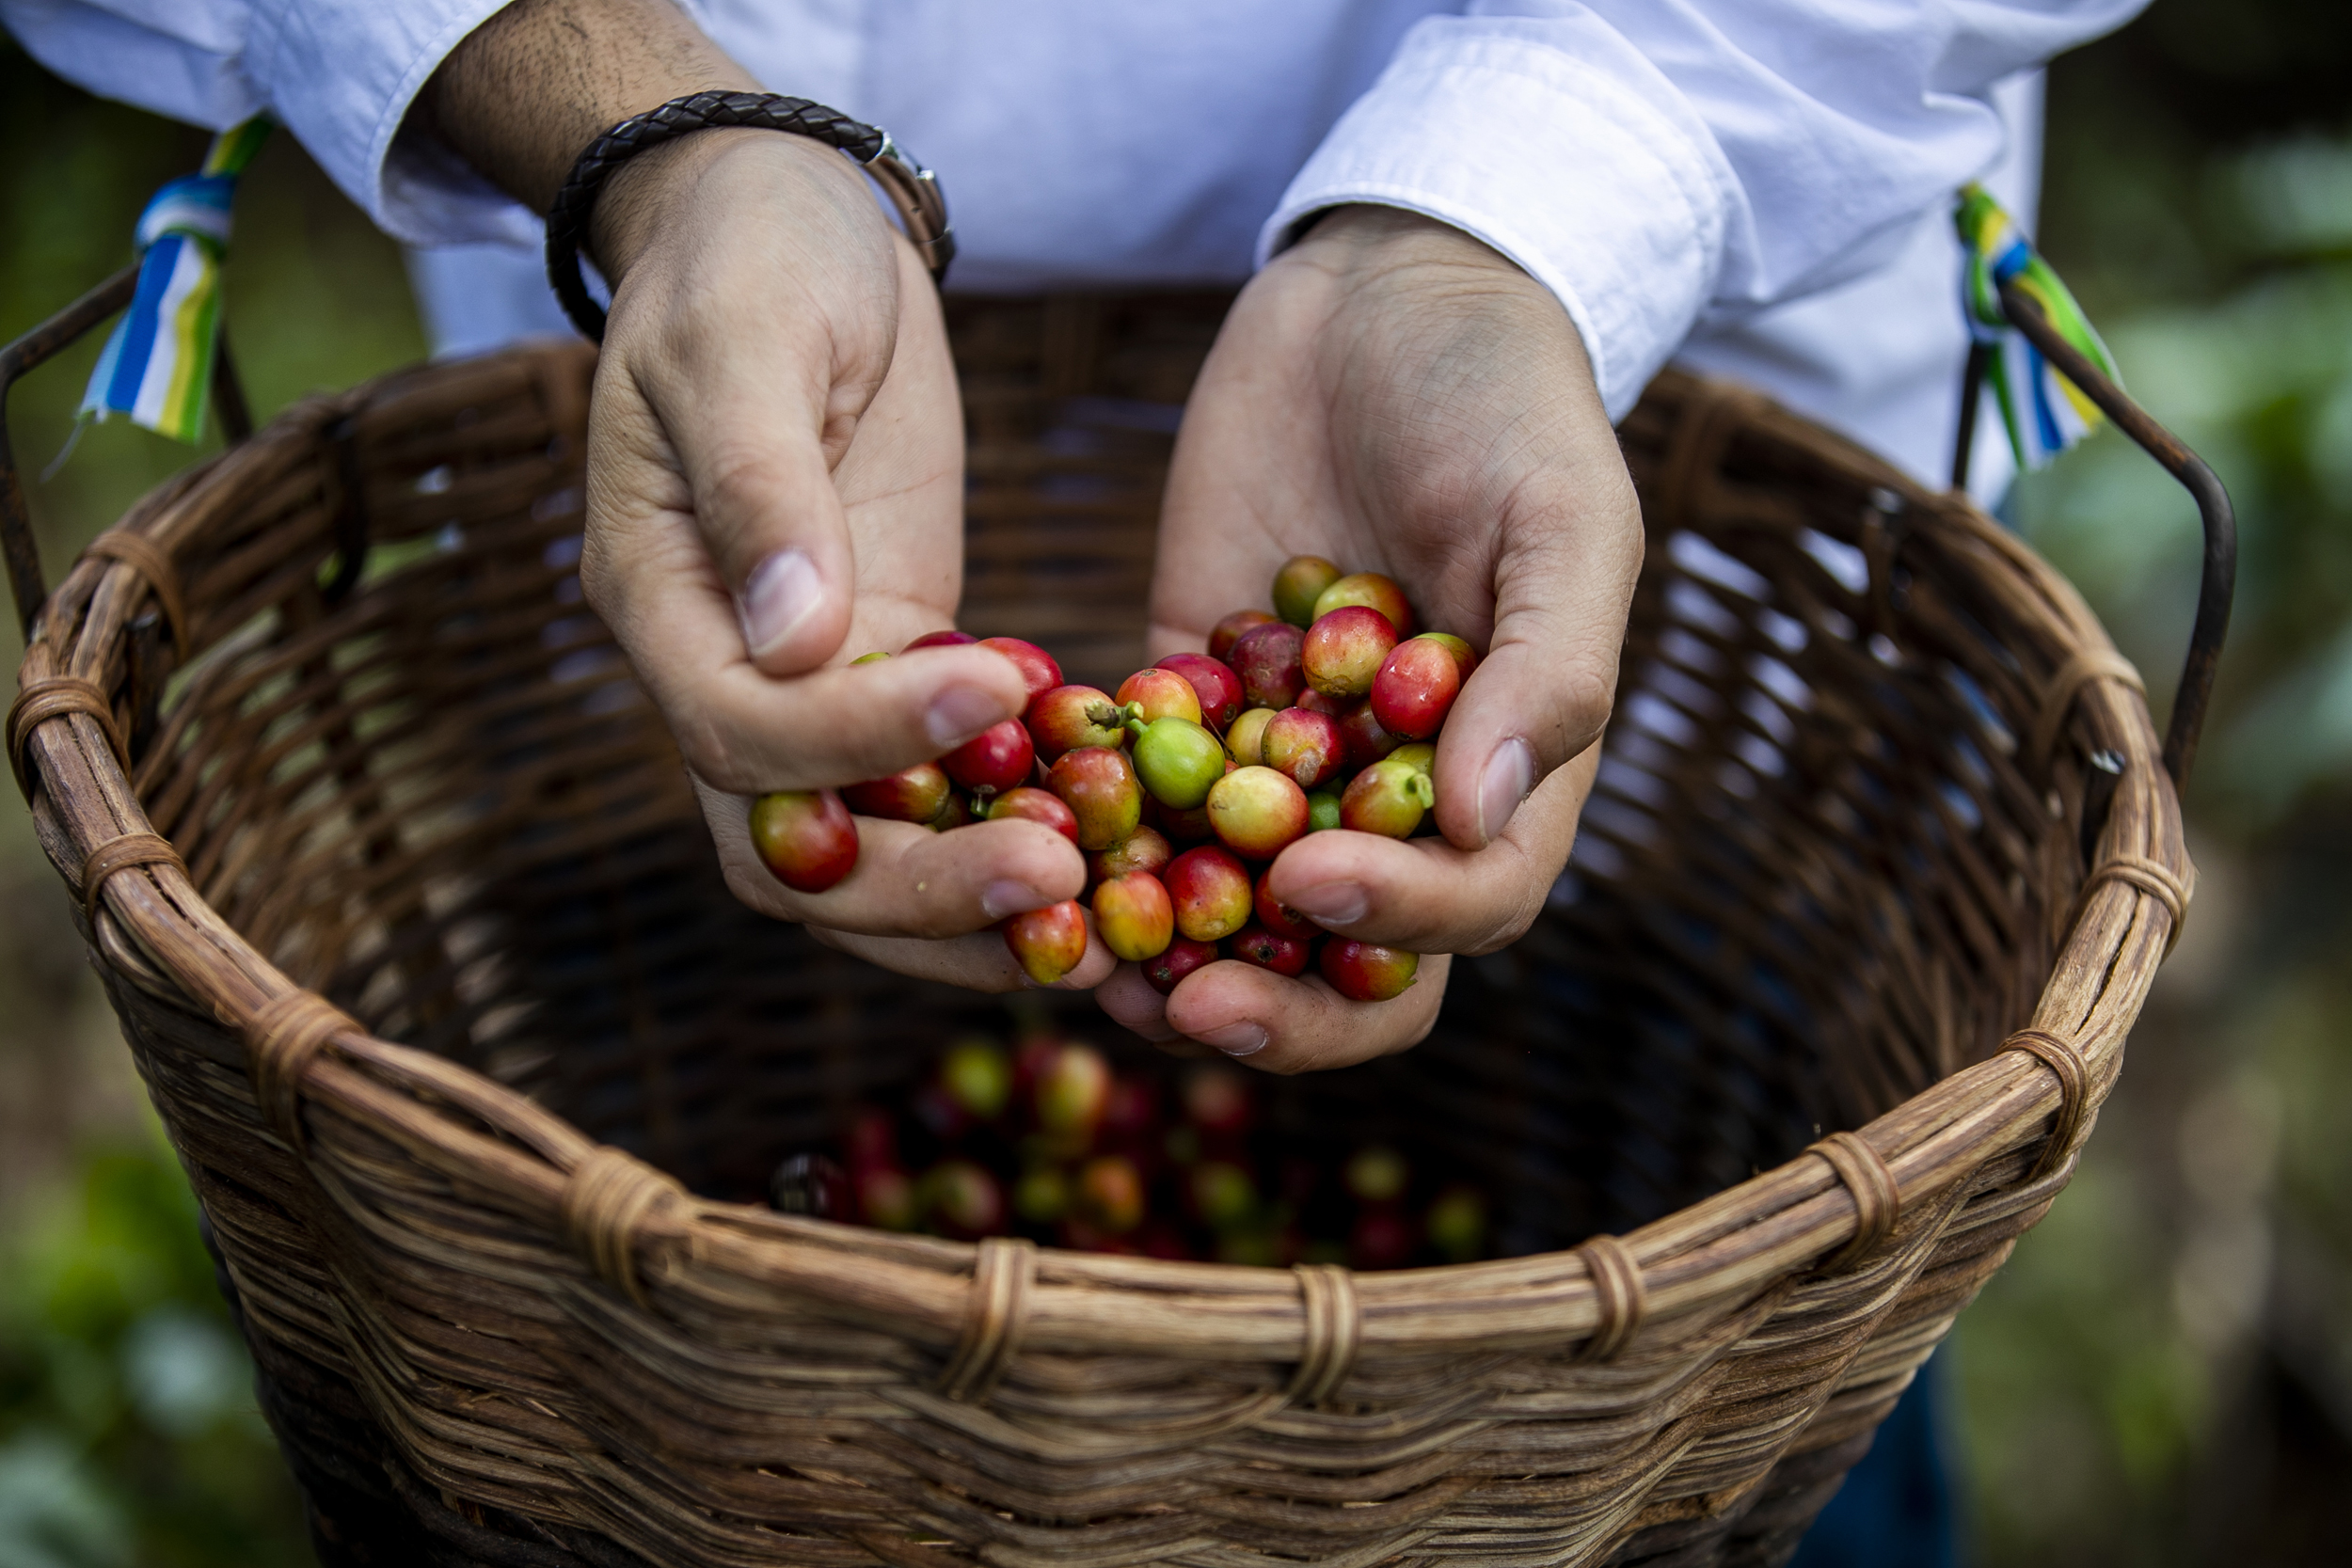 Coffee growers in Puerto Rico bring hope with first harvest after Hurricane Maria